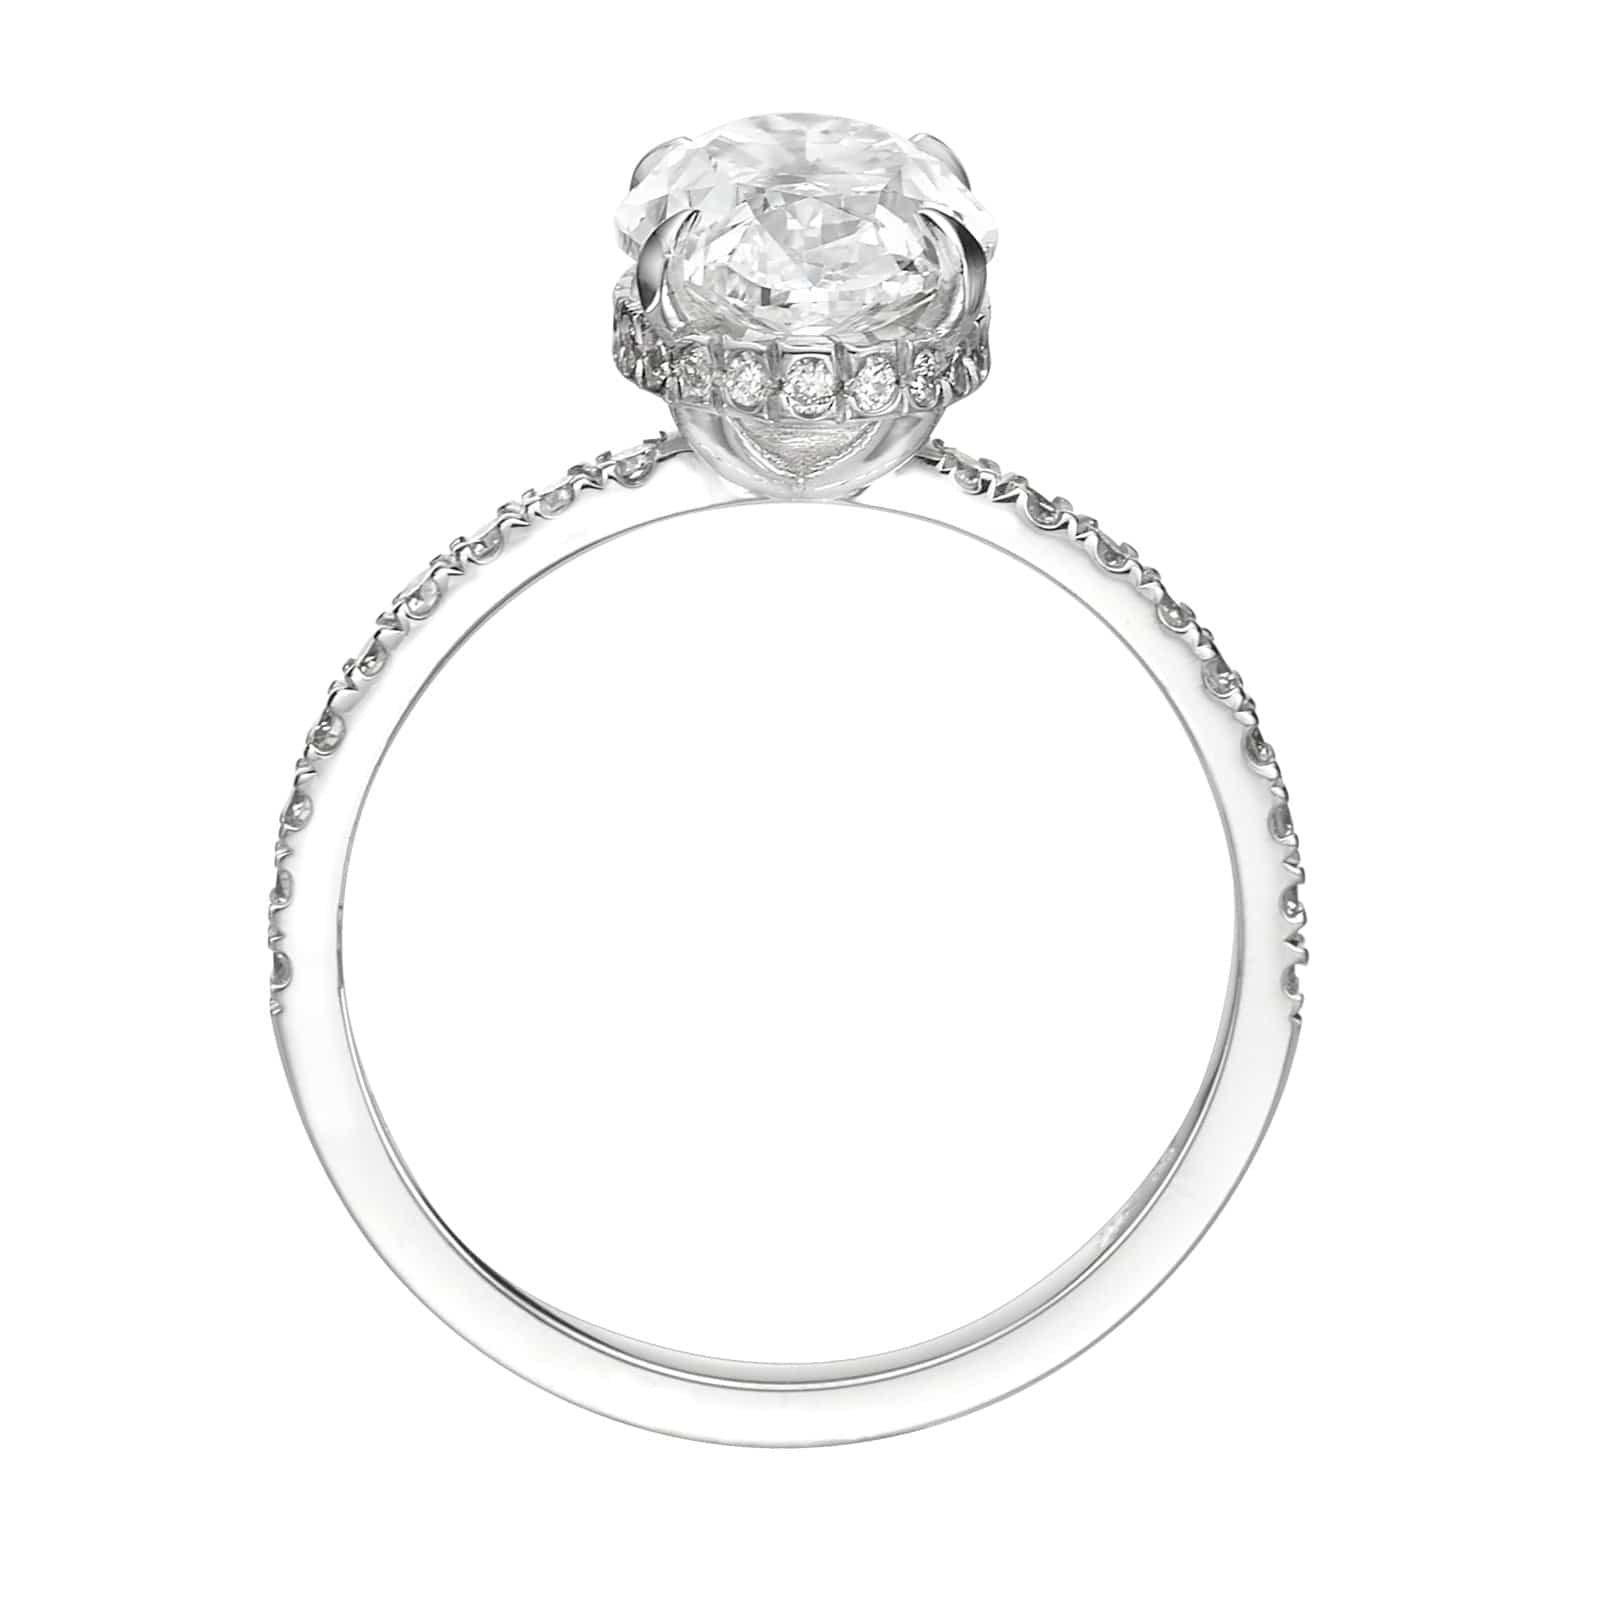 2.50 ct Oval Cut Diamond Engagement Ring